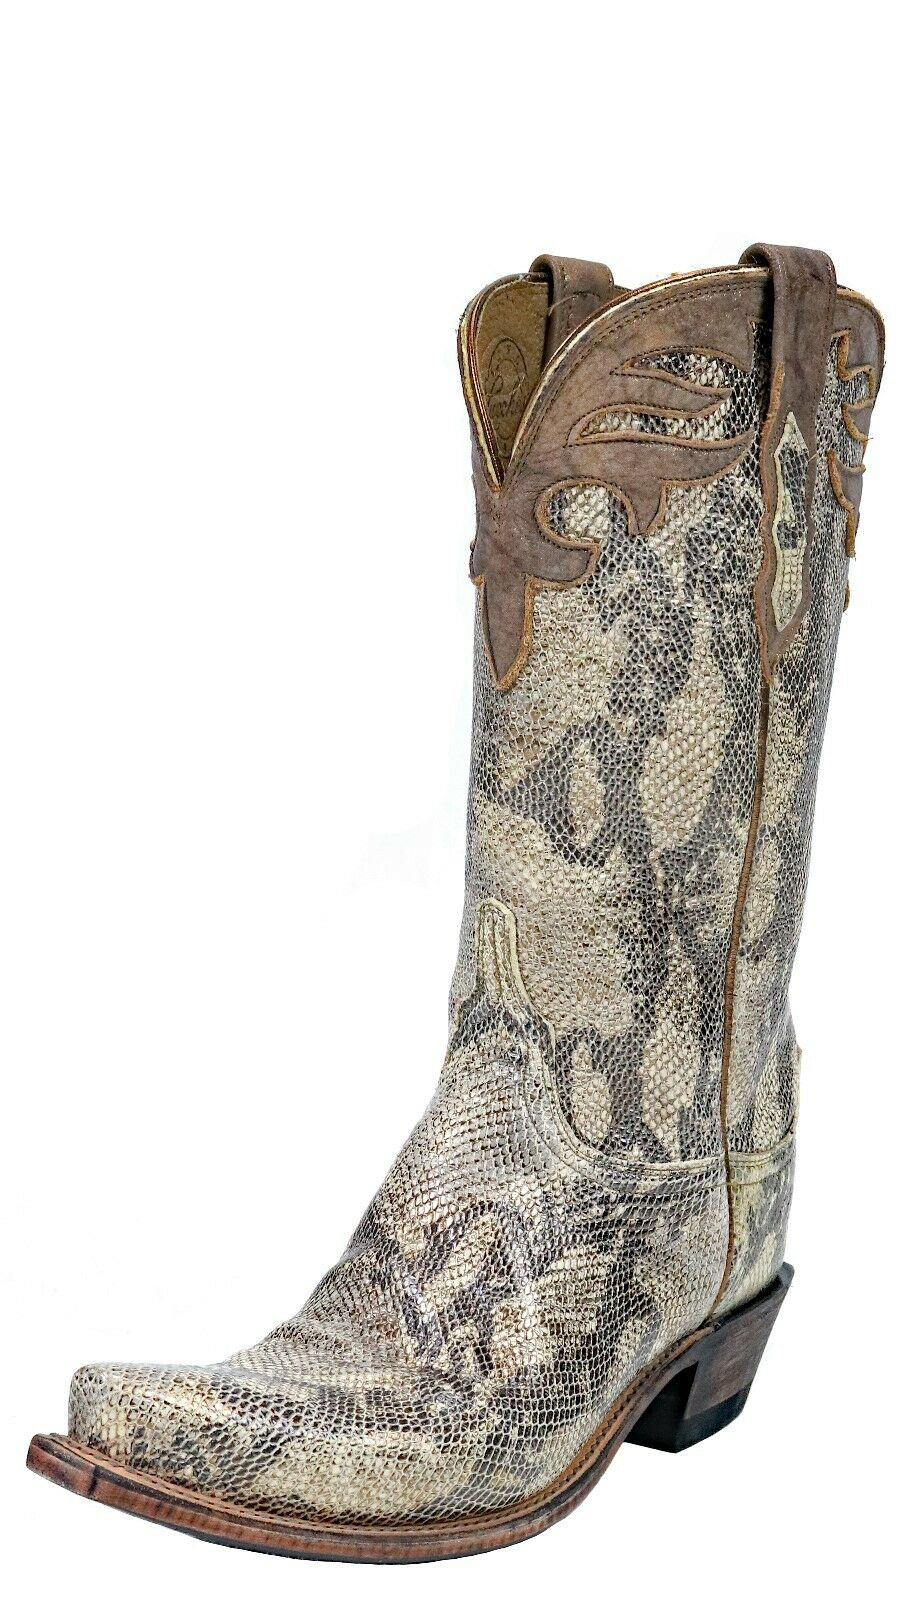 Men's/Women's Women's Lucchese Platinum Amazon Boots N9424 Good design Settlement Price Highly appreciated and widely trusted in and out